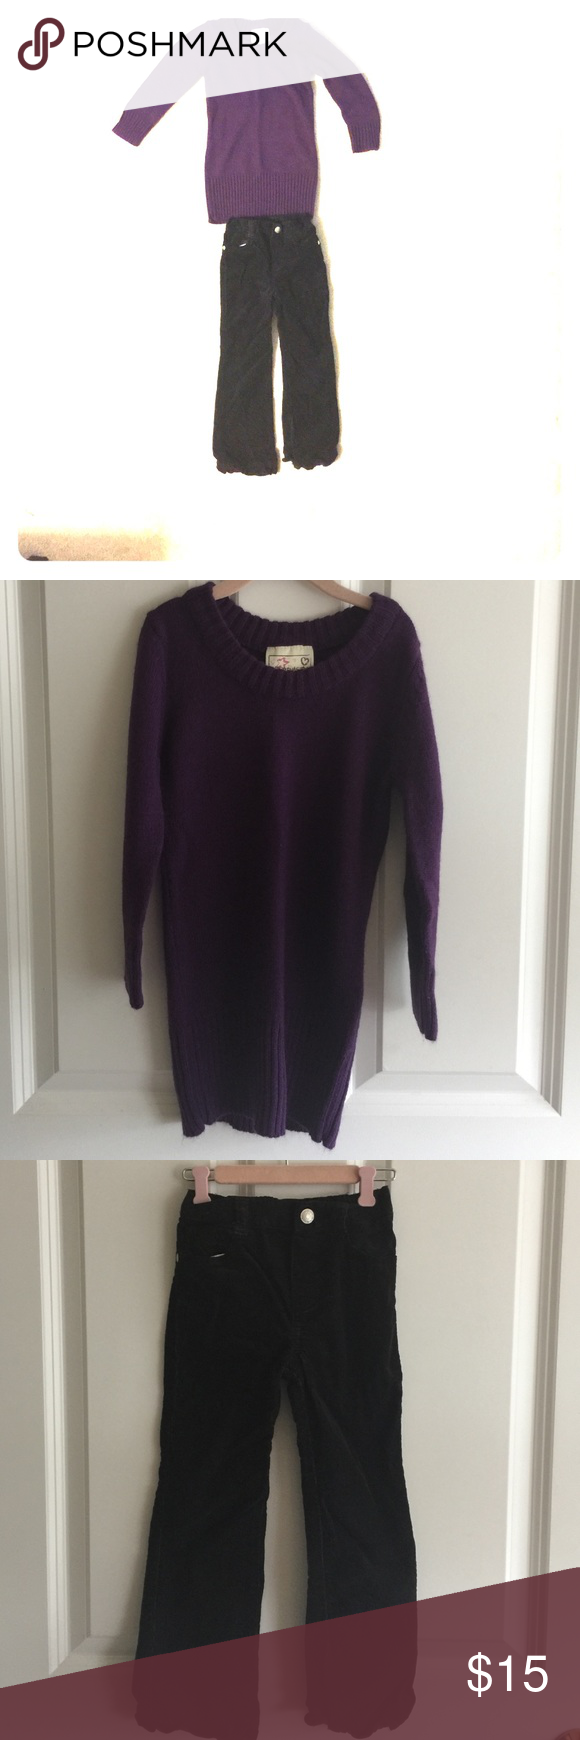 Purple sweater and black cords Purple sweater size 4 and black ...